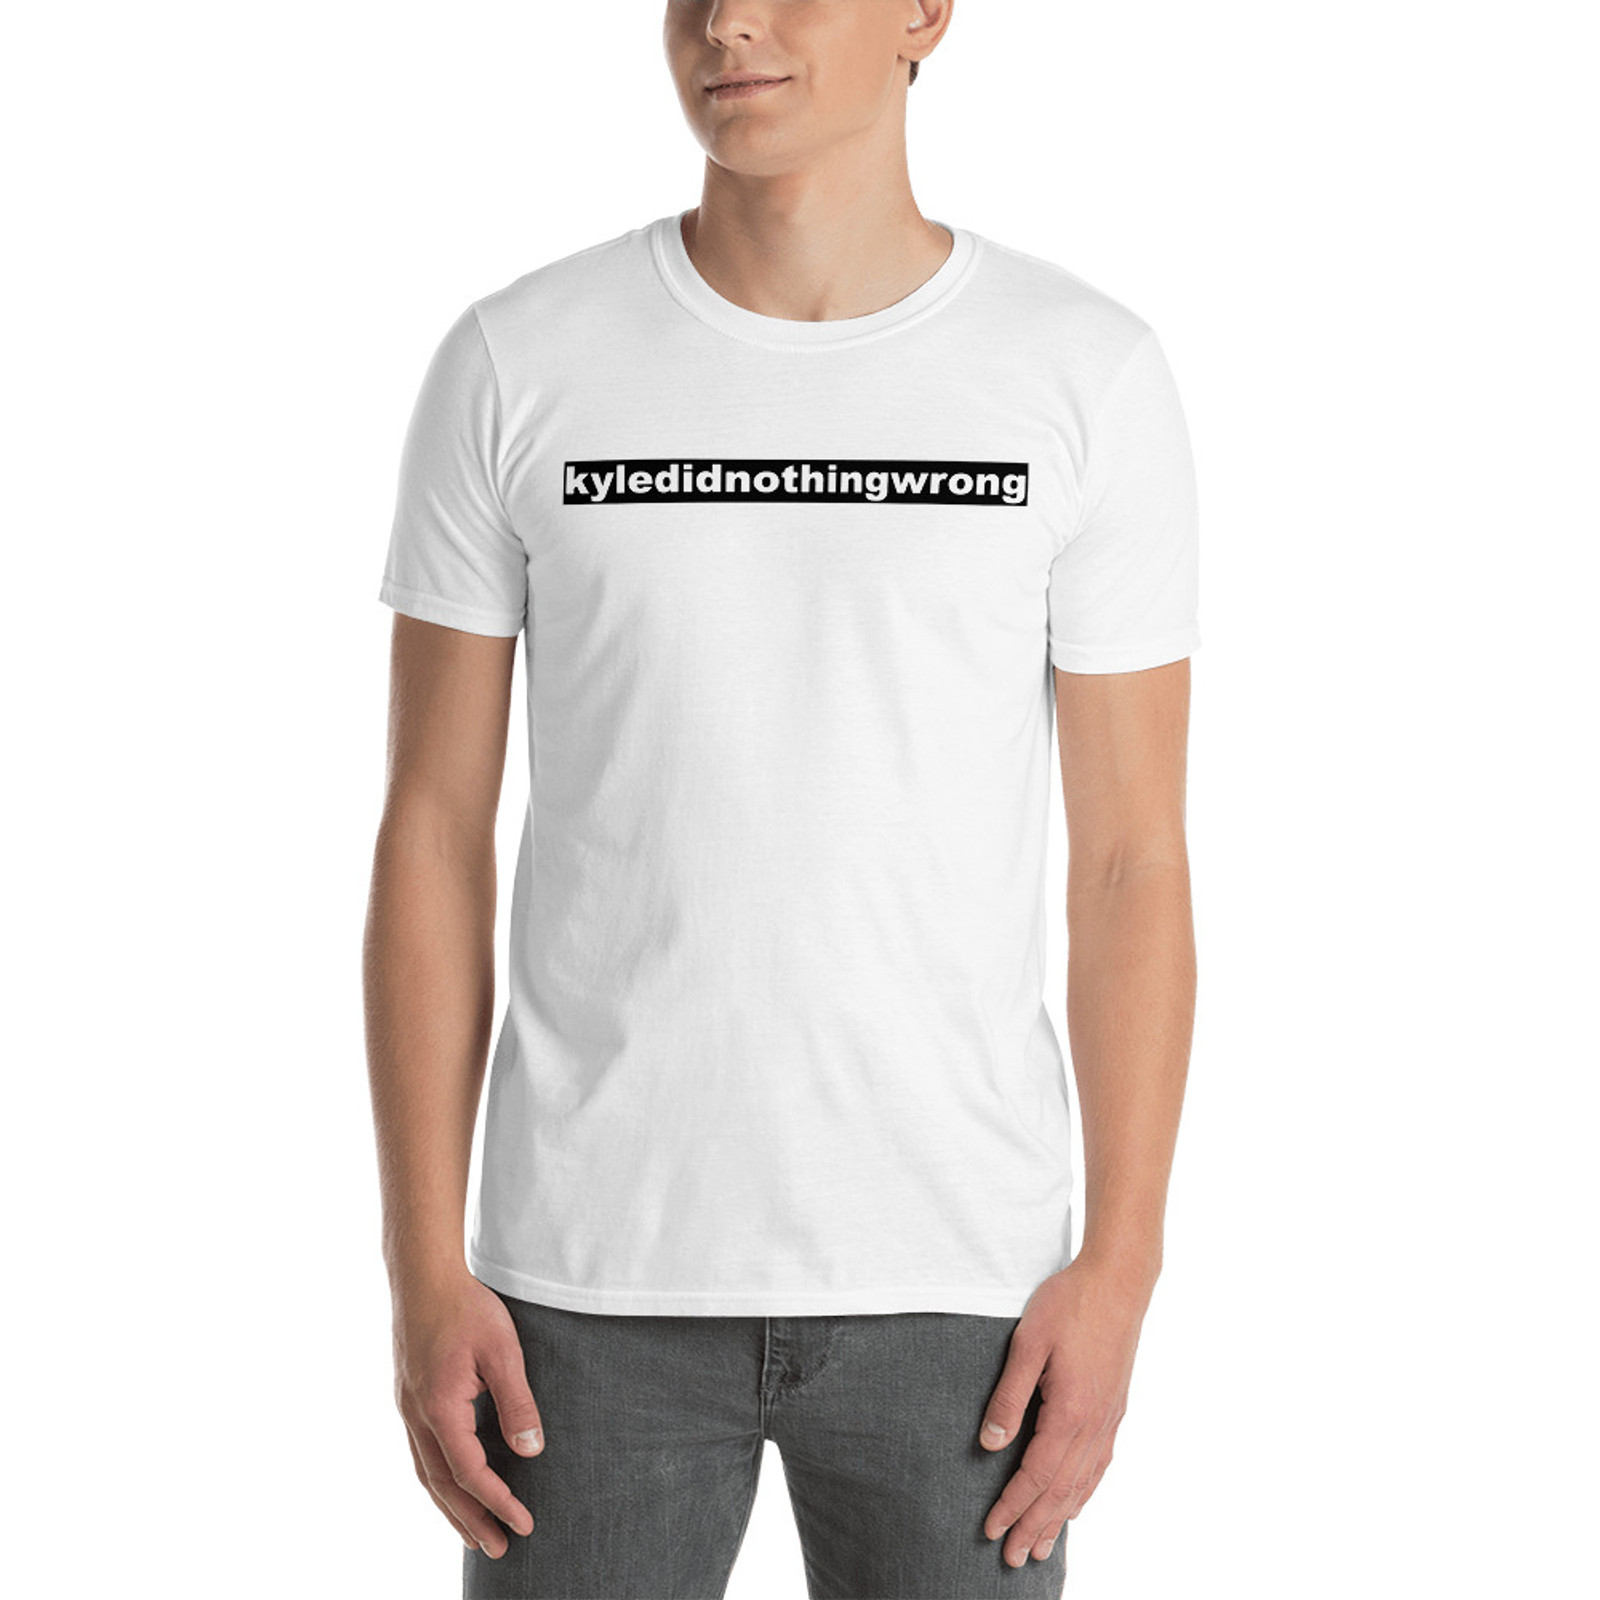 Kyle Did Nothing Wrong T-Shirt